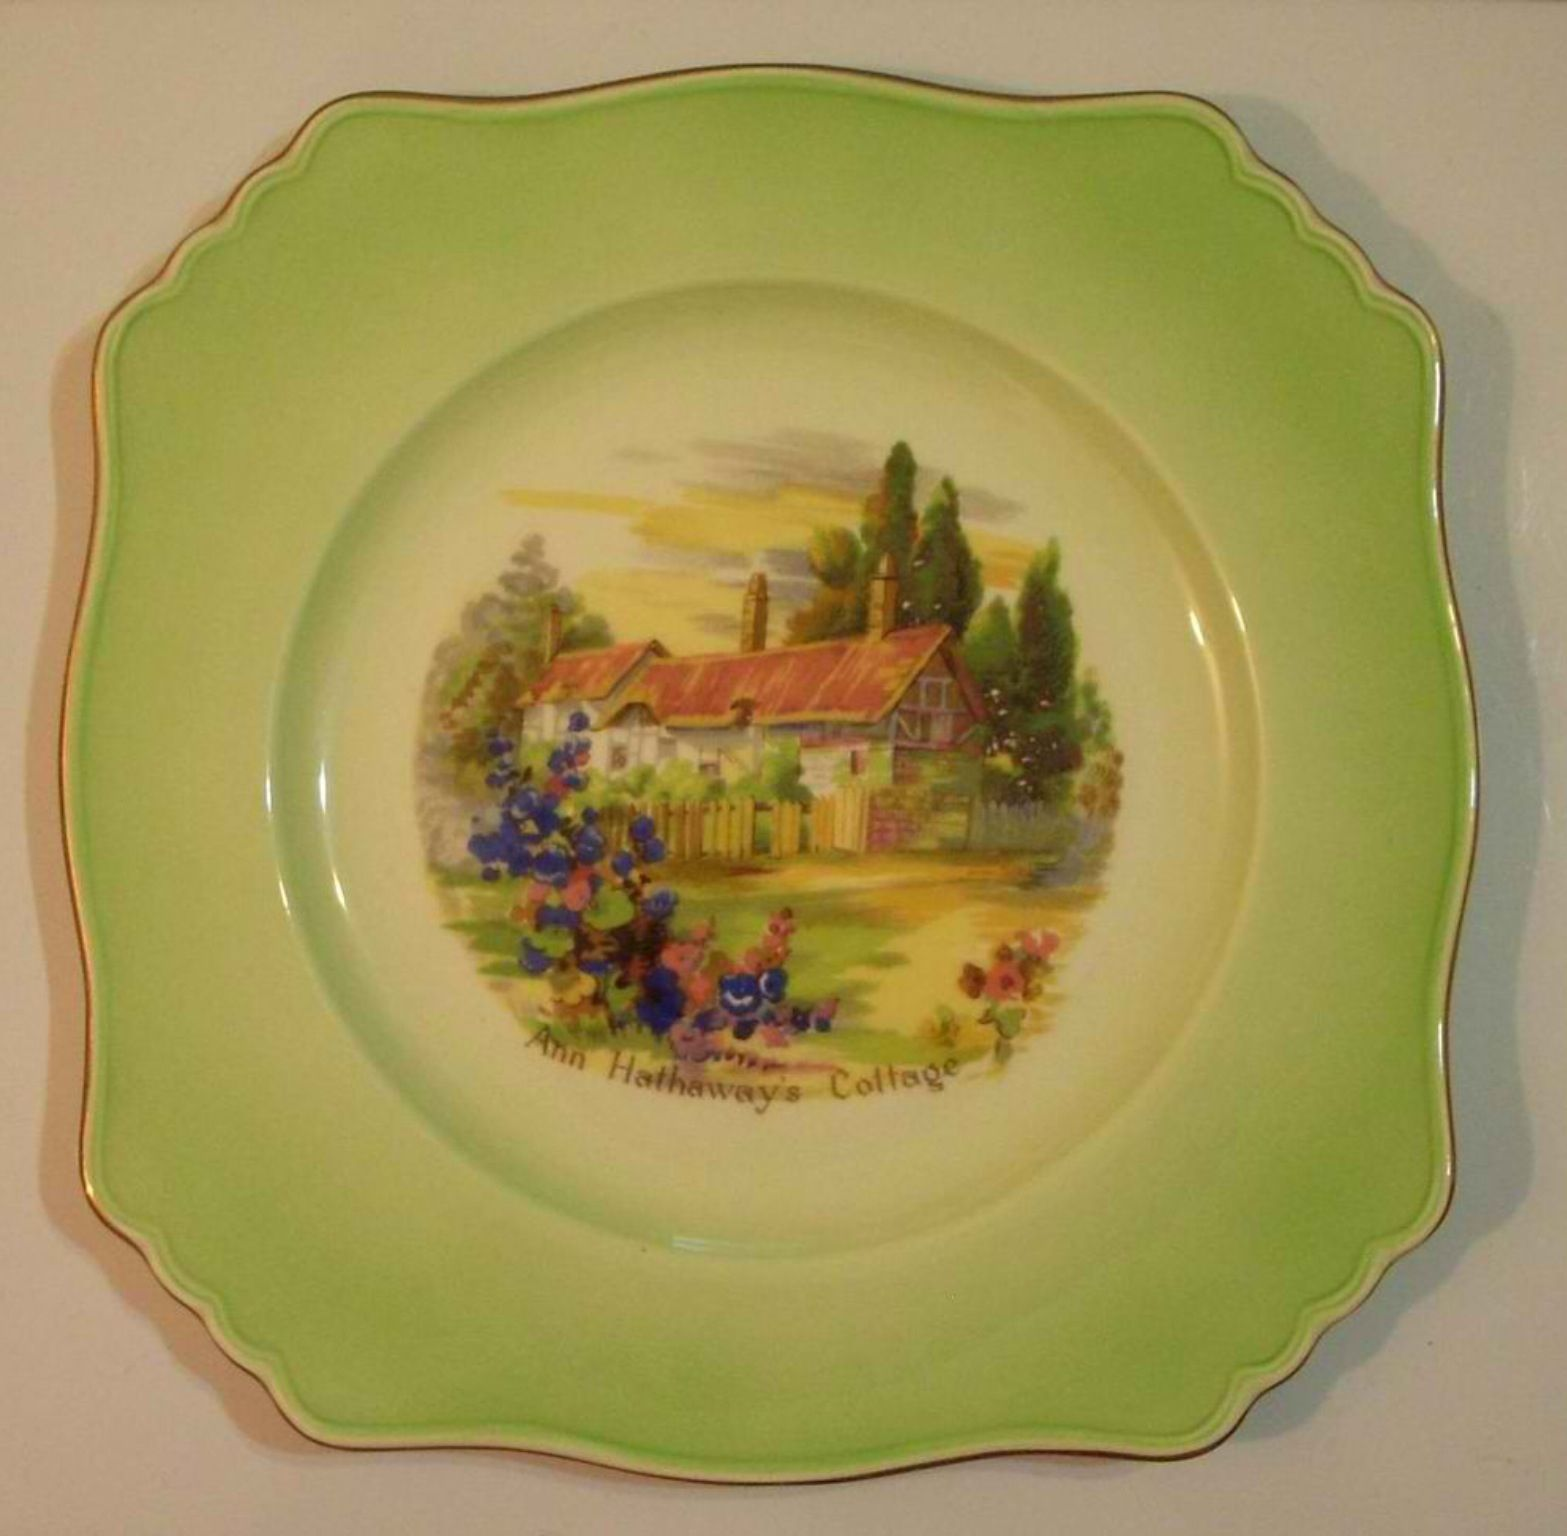 Vintage green plate with Anne Hathaway cottage, by Royal Winton ...